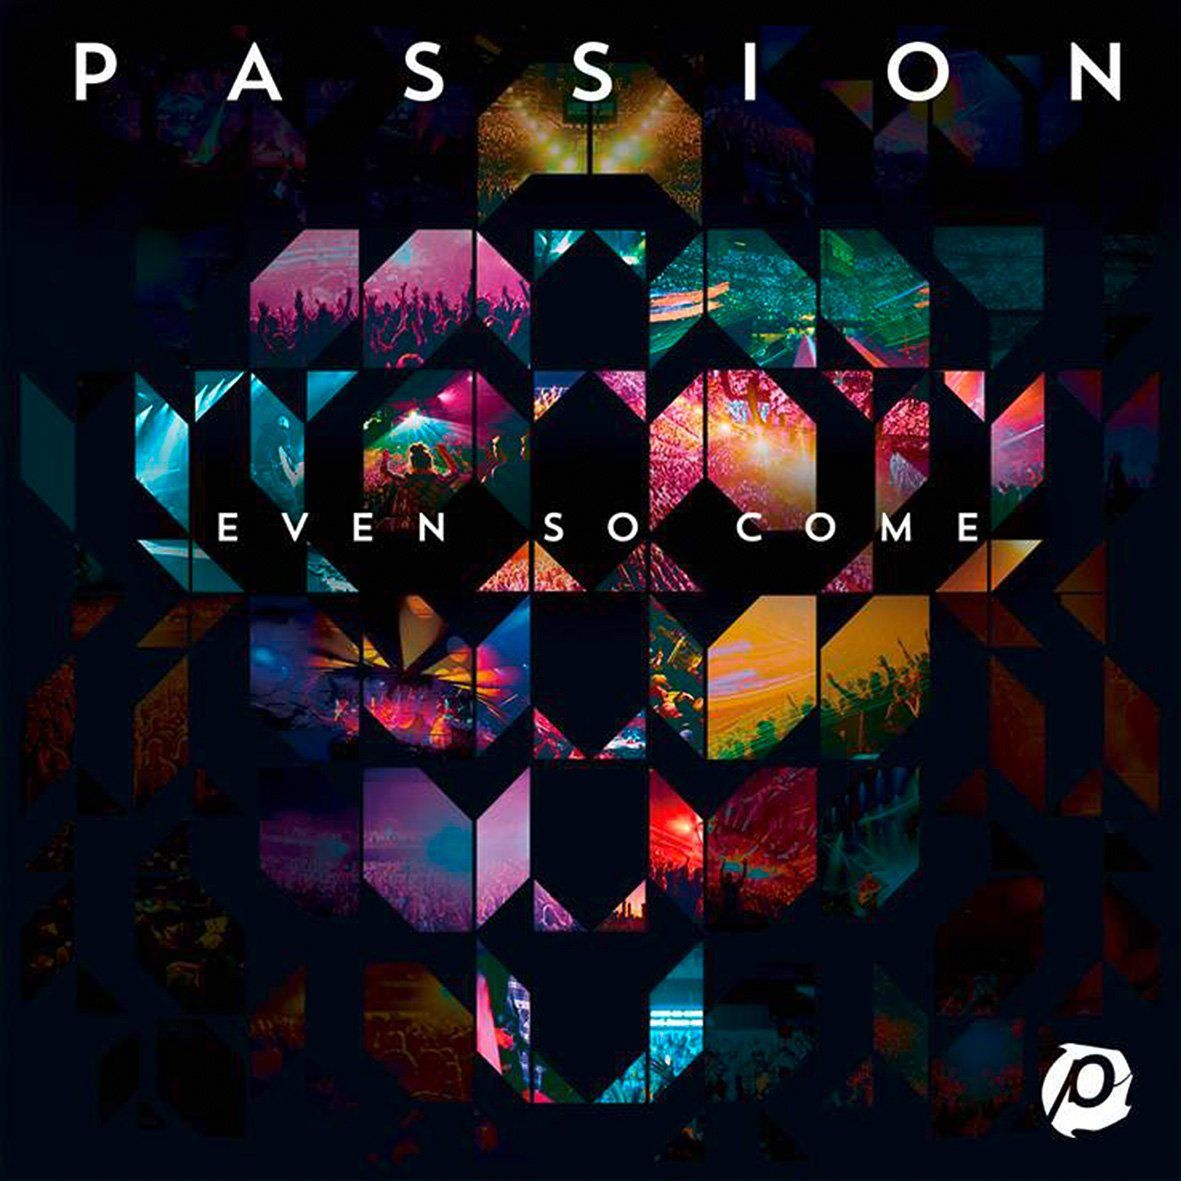 I'm listening to Even So Come by Kristian Stanfill in my